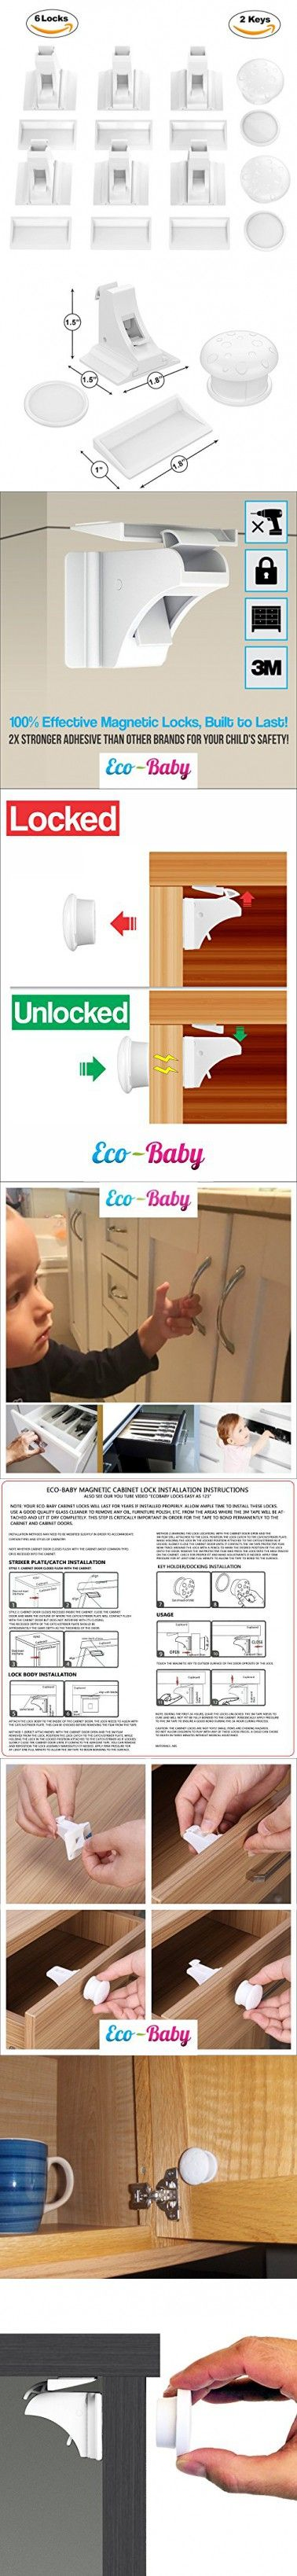 Baby & Child Proof Cabinet & Drawers Magnetic Safety Locks Set of 6 with 2 Keys By Eco-Baby - Heavy Duty Locking System with 3M Adhesive Tape Easy To Install Without Damaging Your Furniture